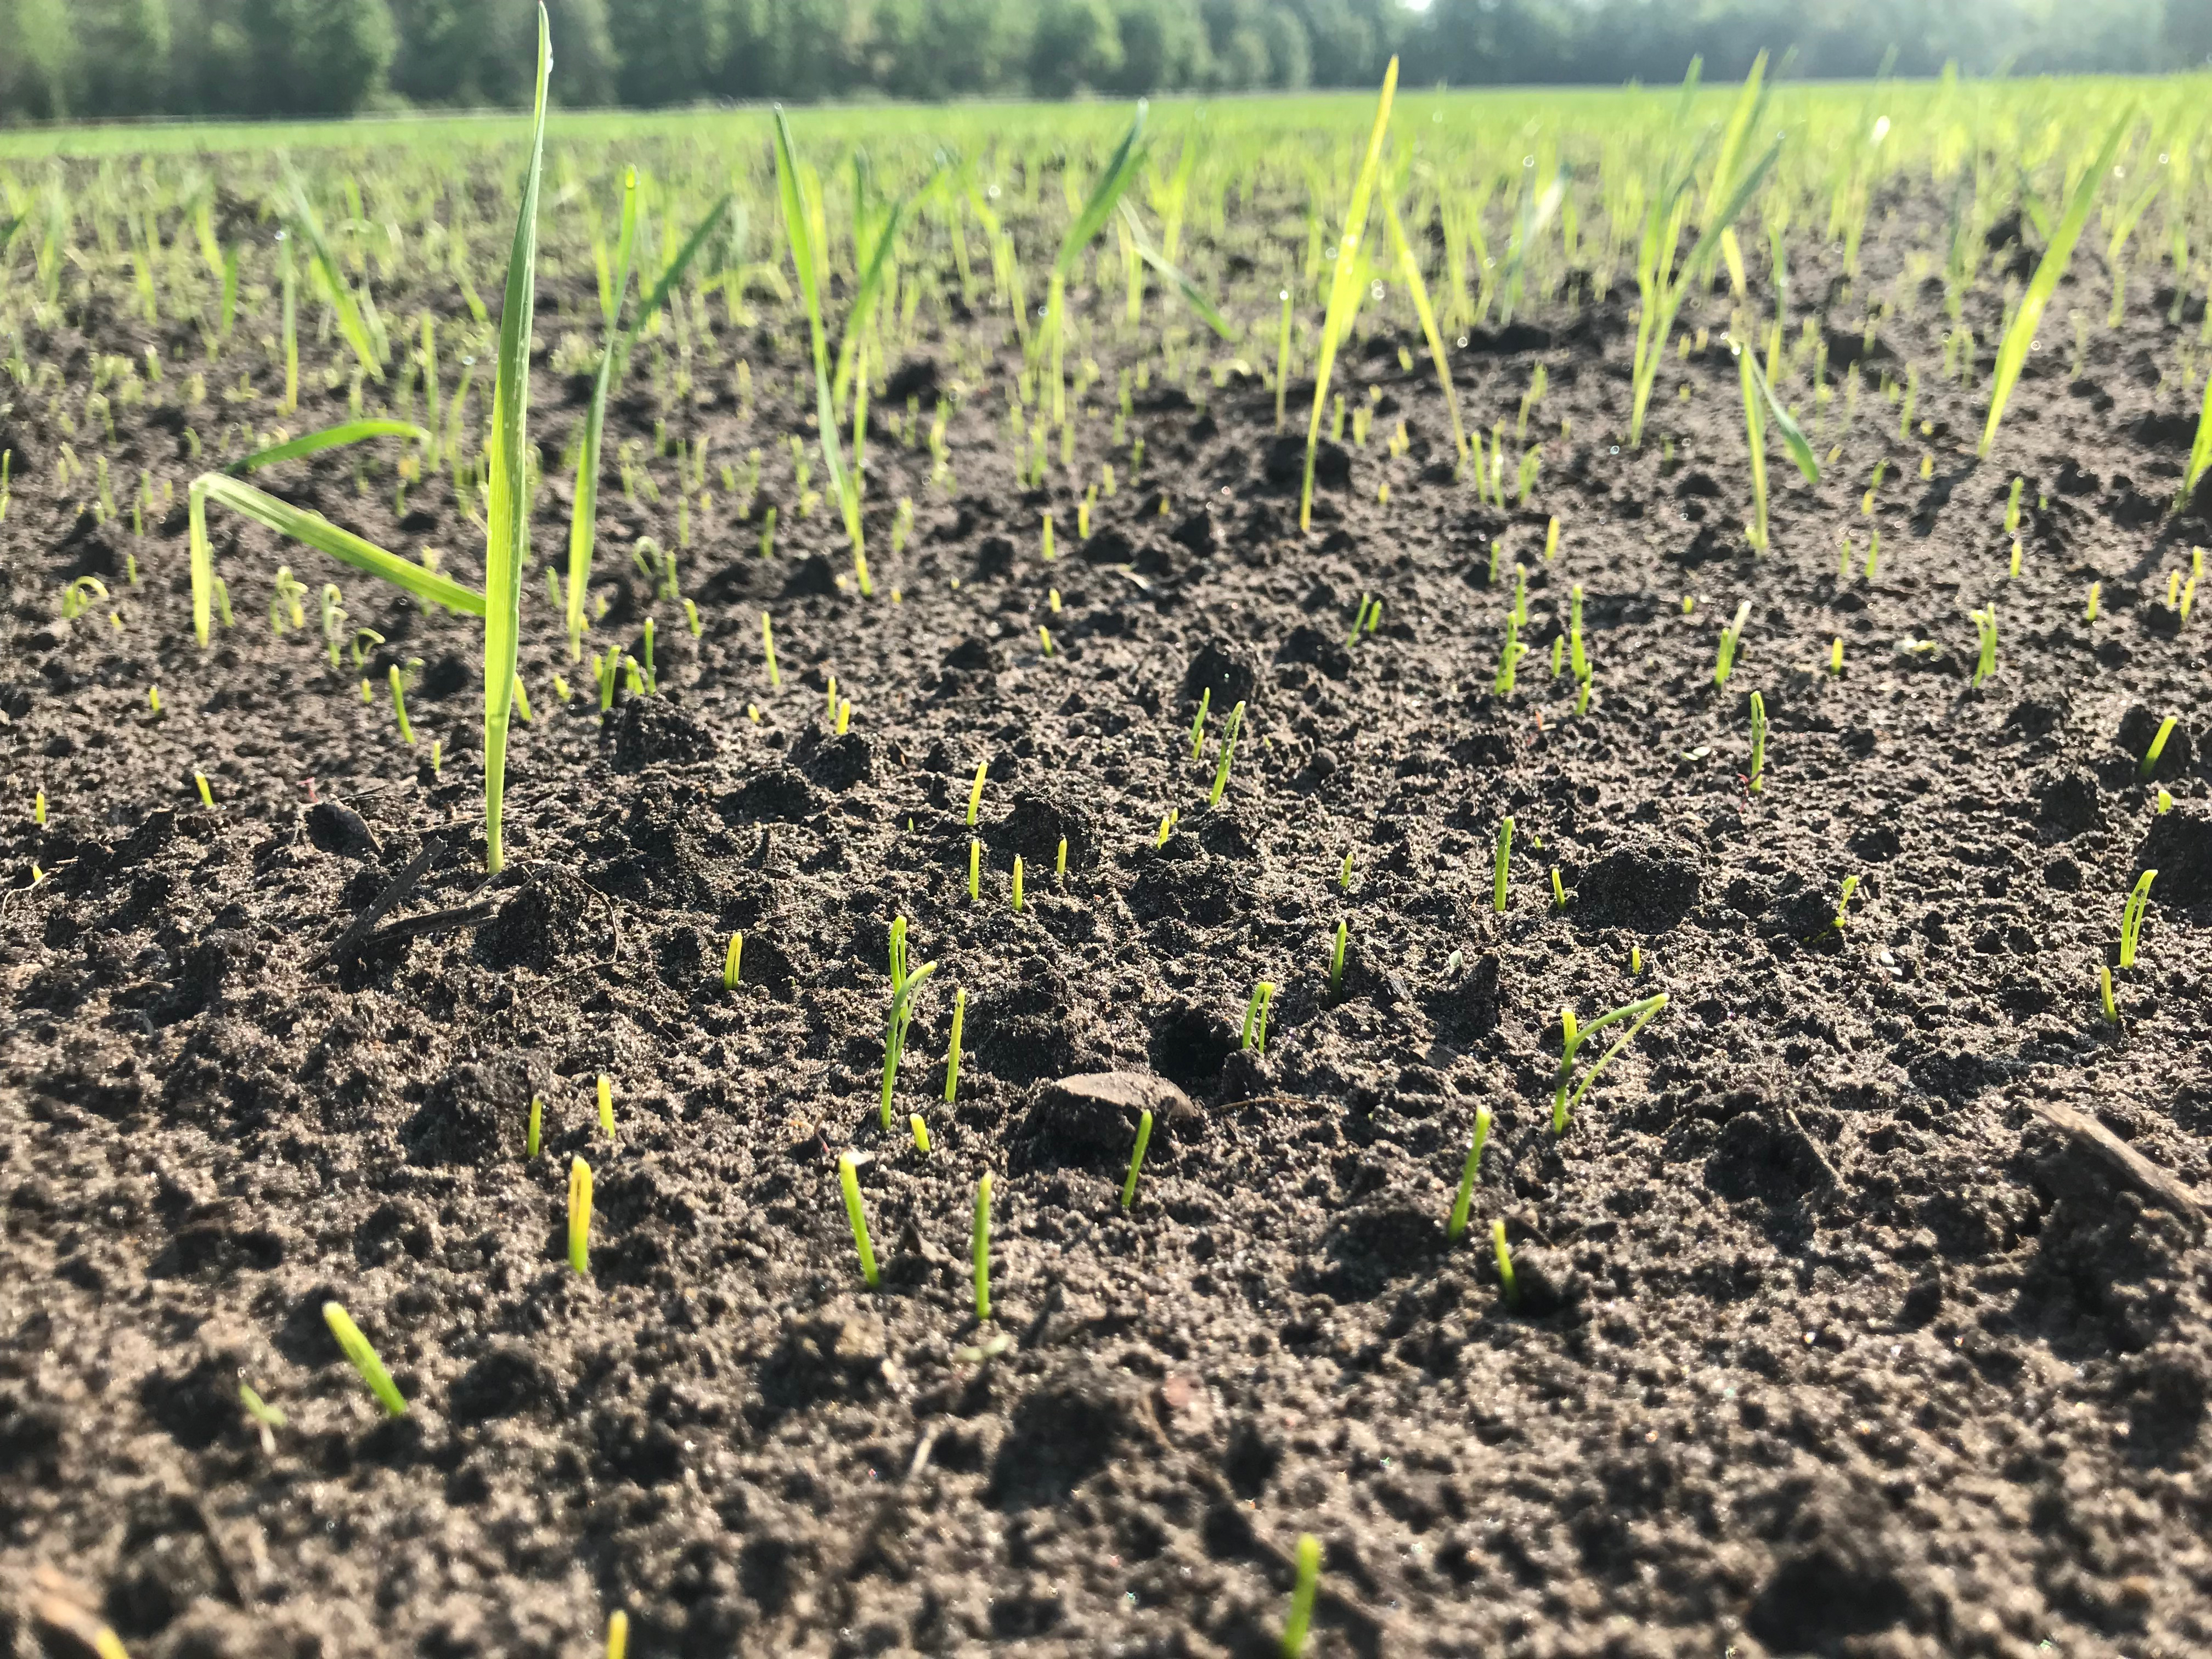 Green onions at the flag leaf stage germinating